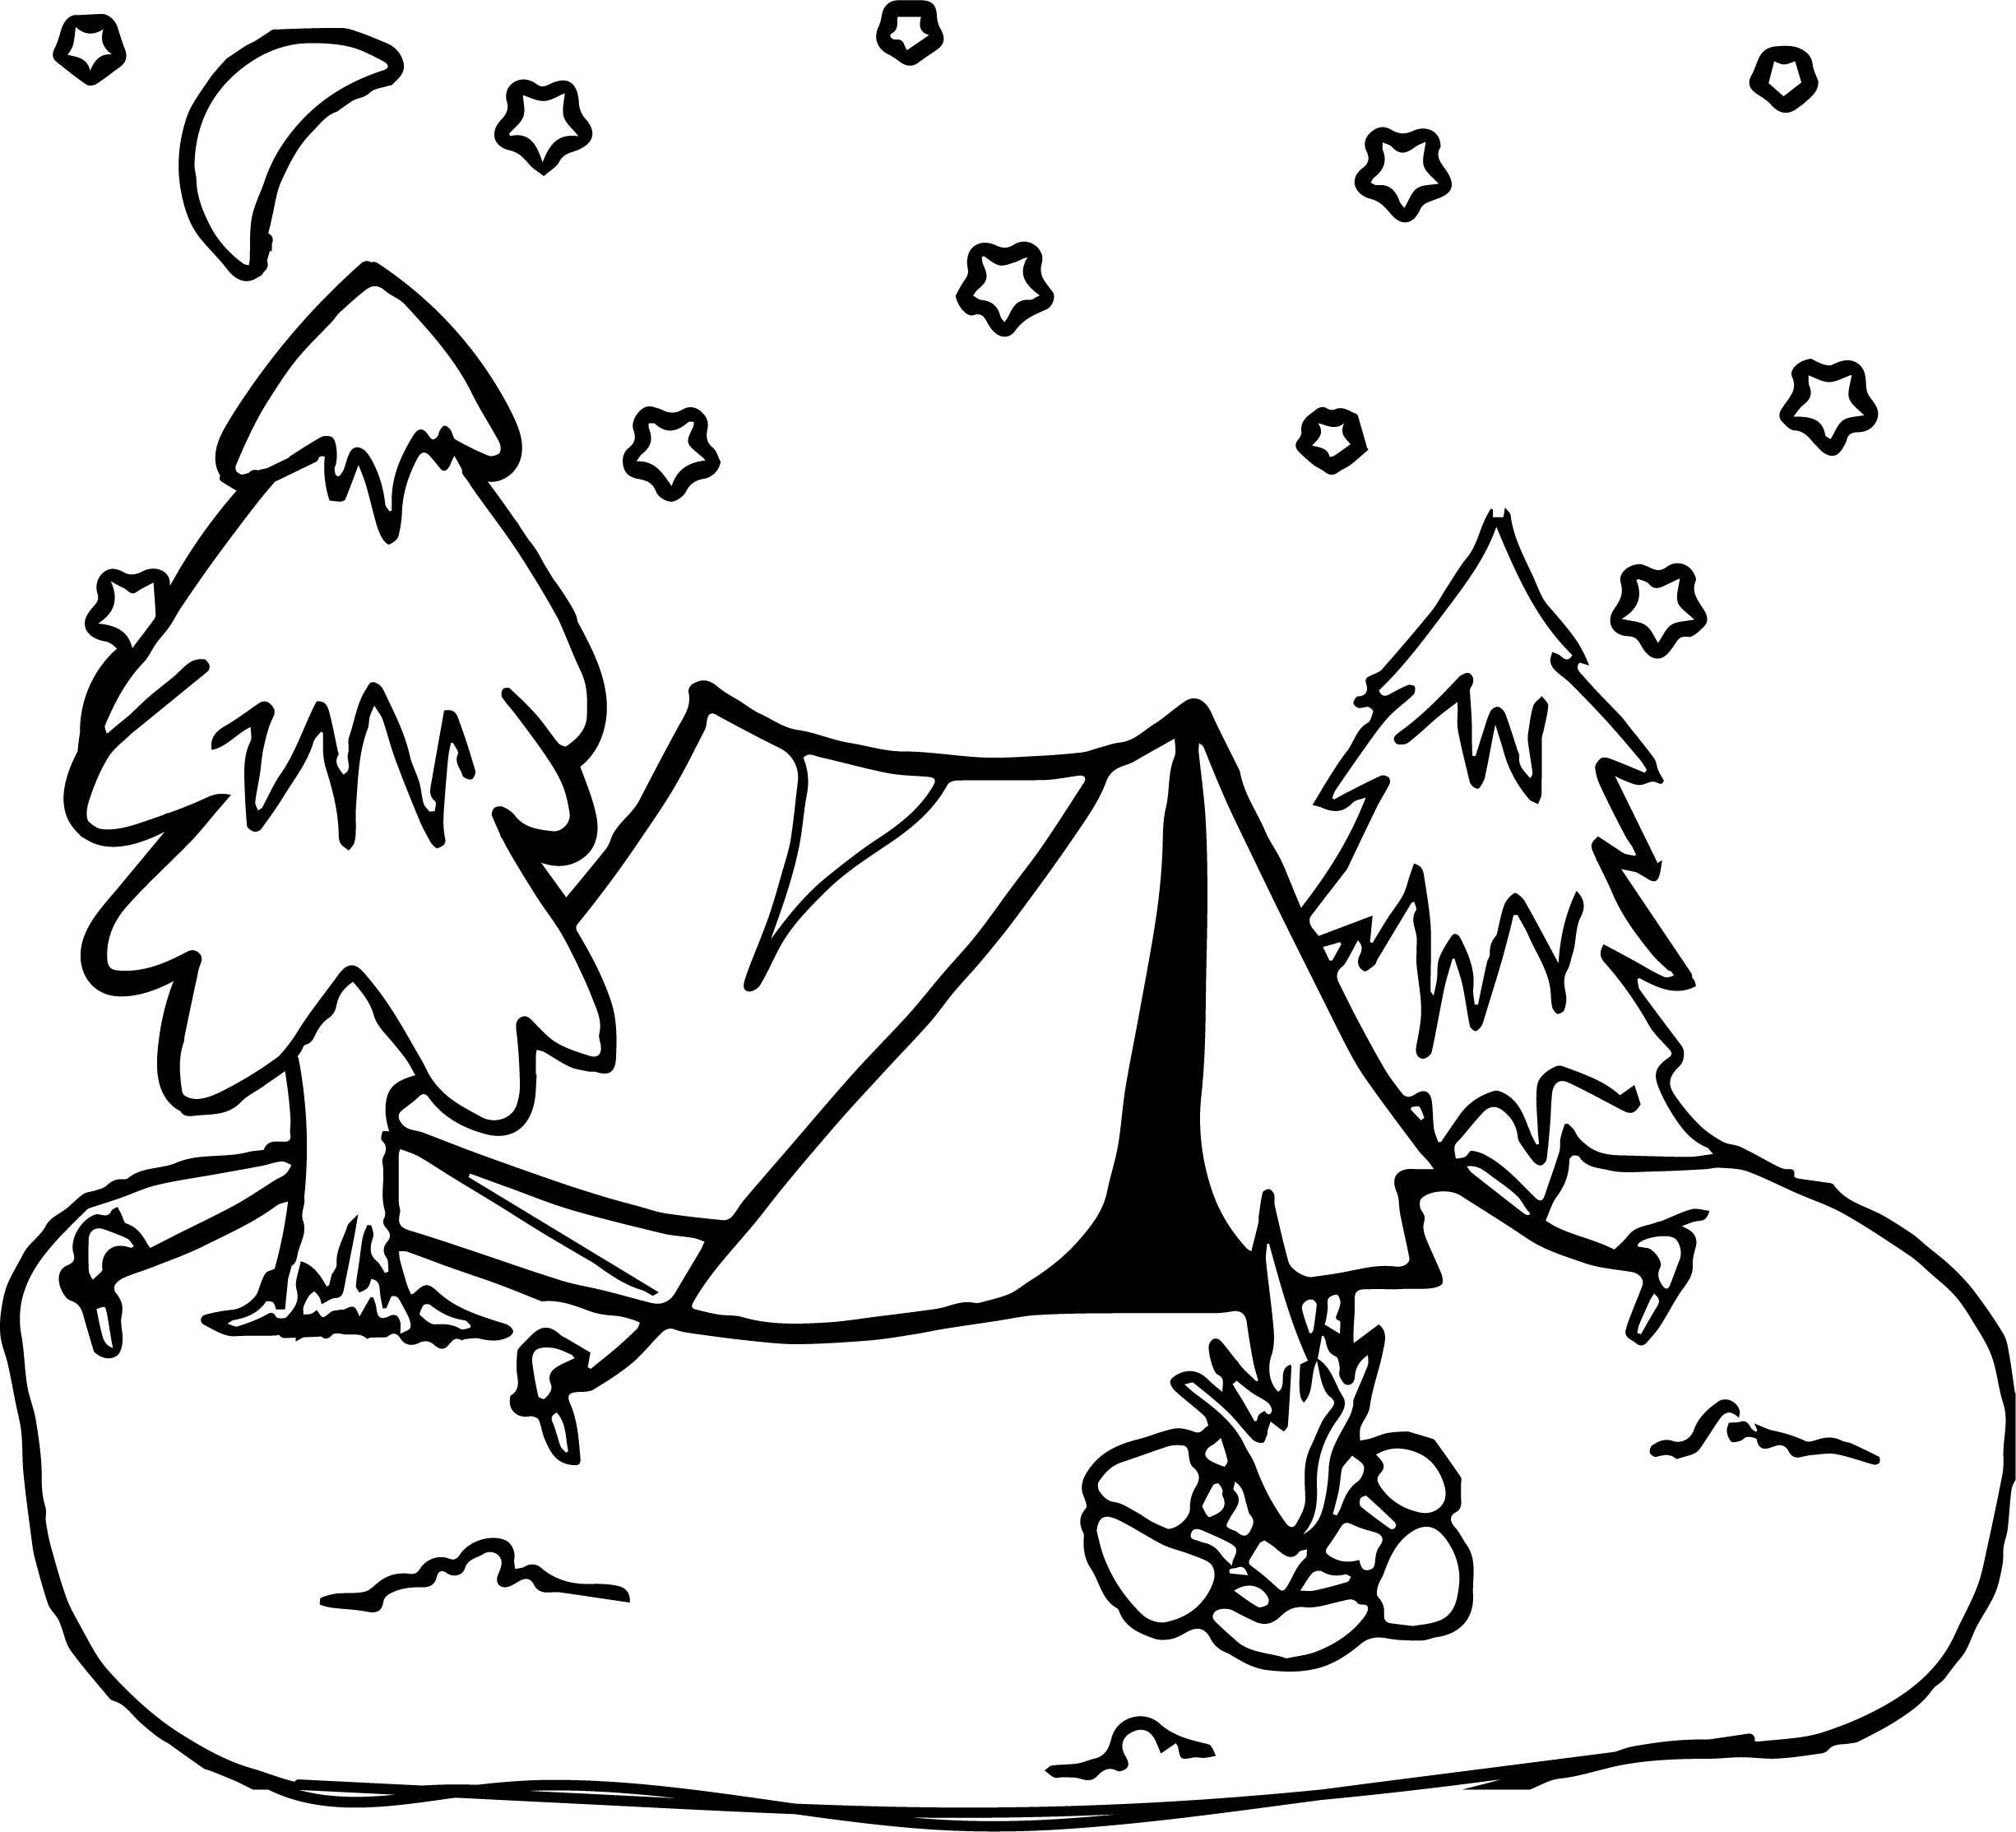 Cool Camping Night Stars Coloring Page Desenhos